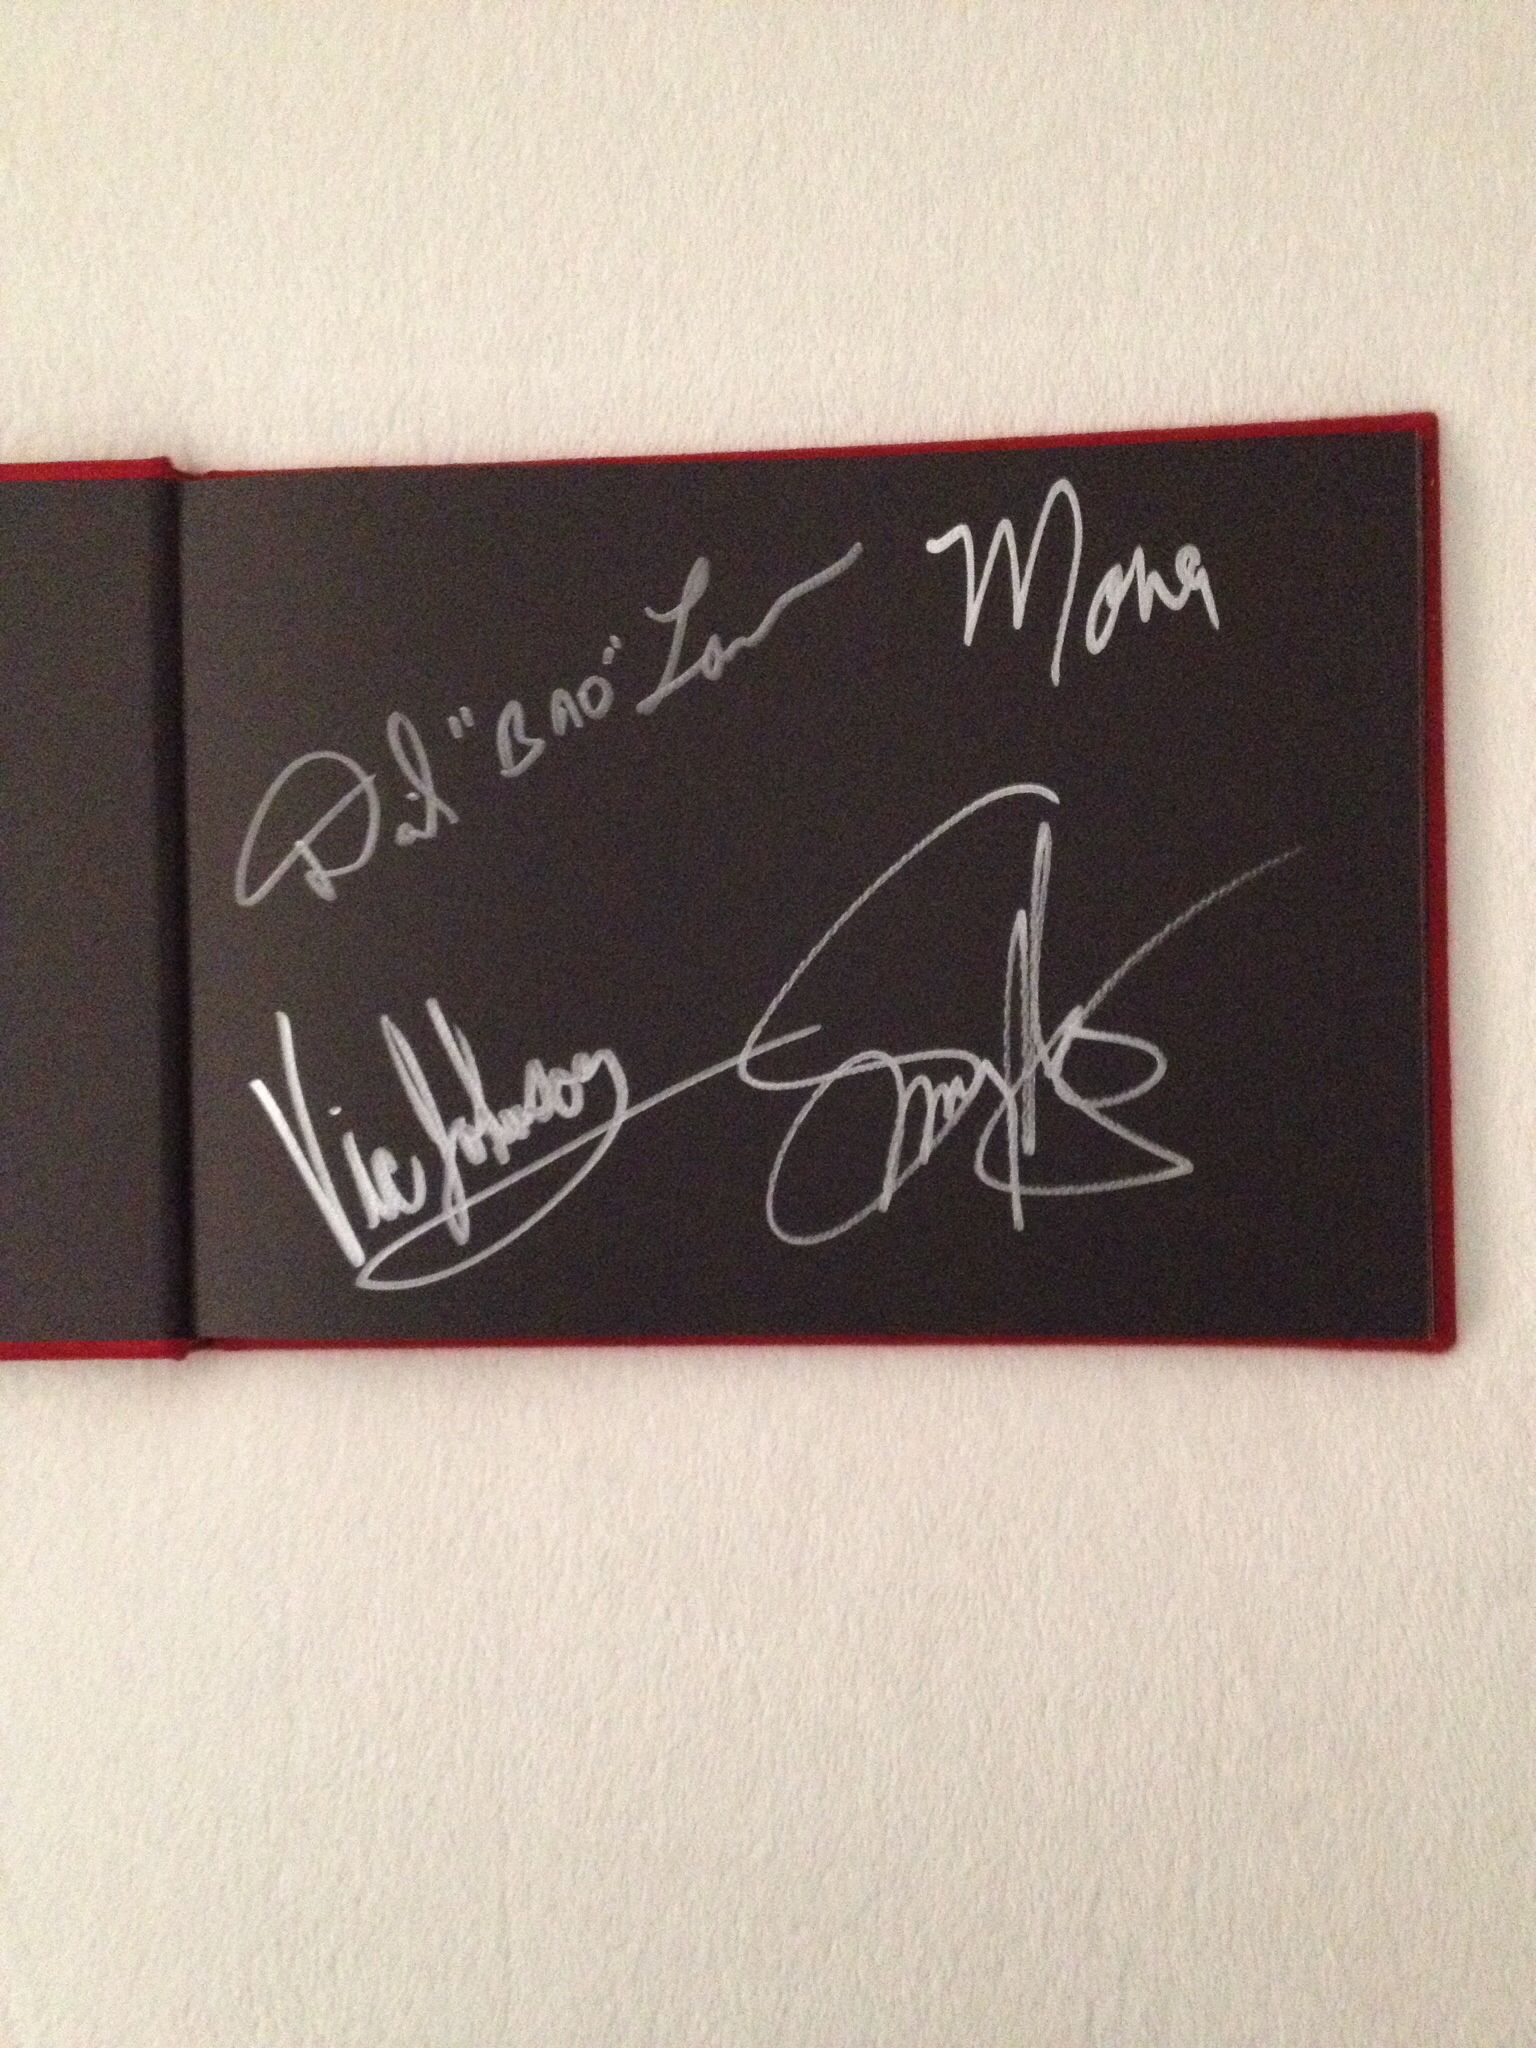 Sammy Hagar And Friends Signed Book Friends Sign Chalkboard Quote Art Book Signing